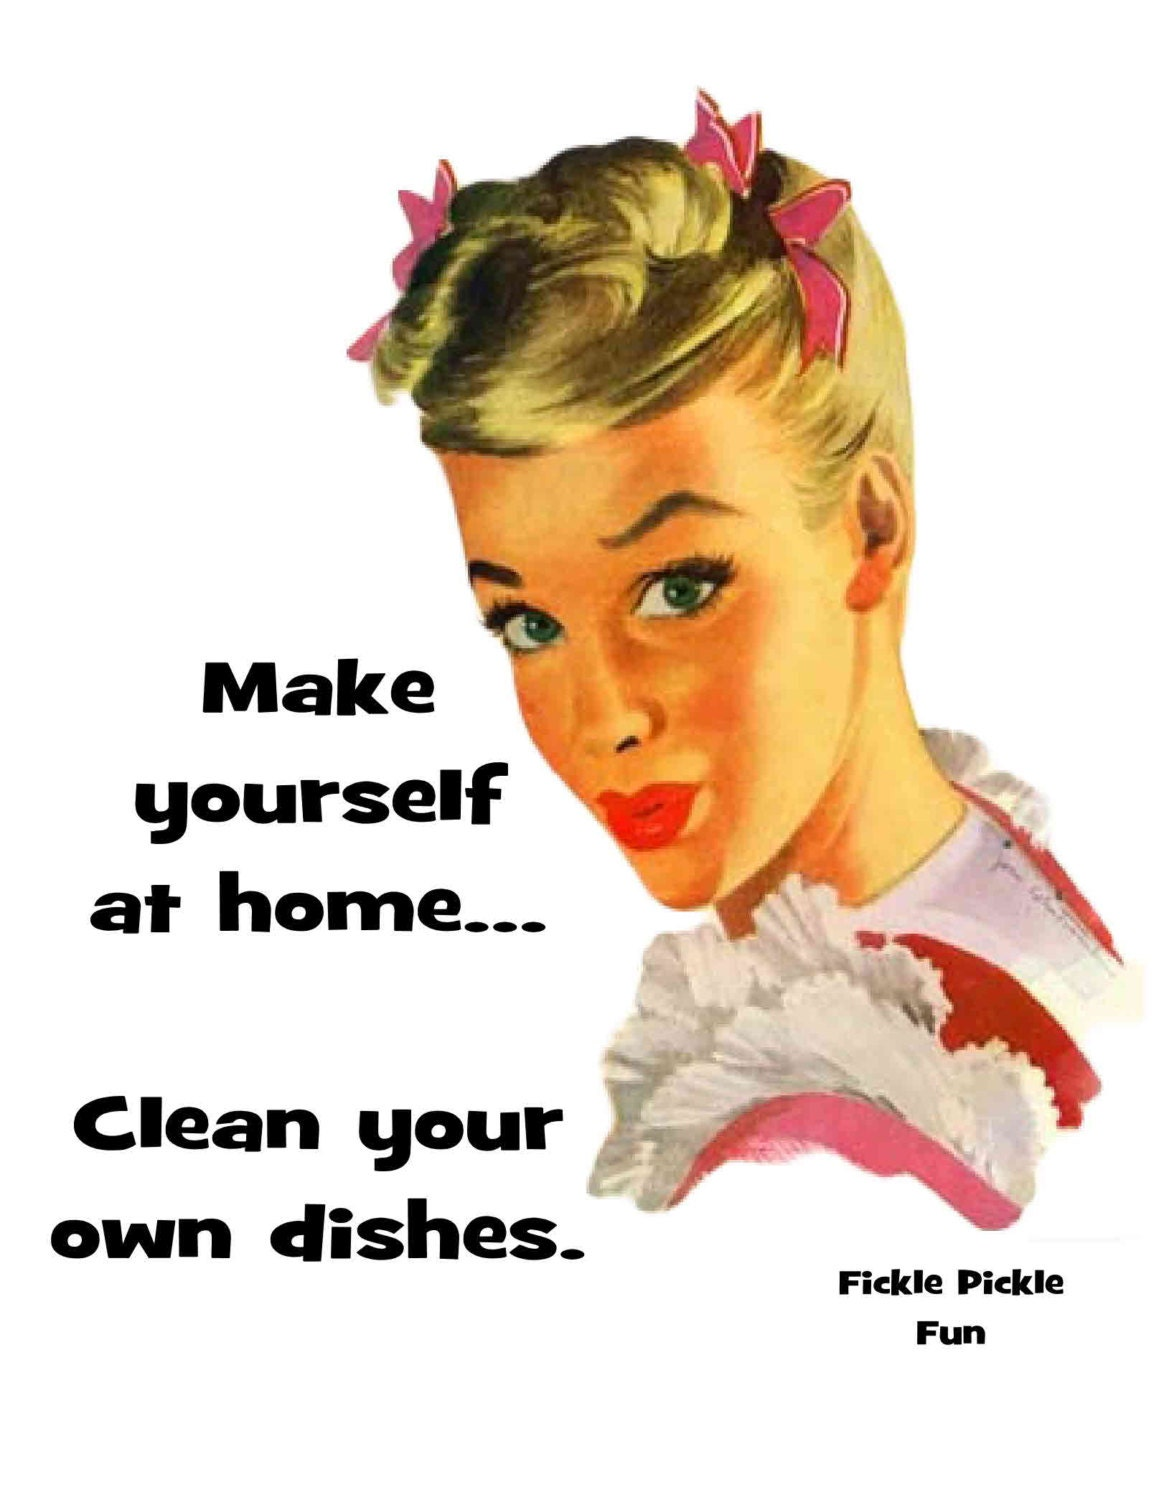 Make yourself at home Clean your own dishes funny kitchen